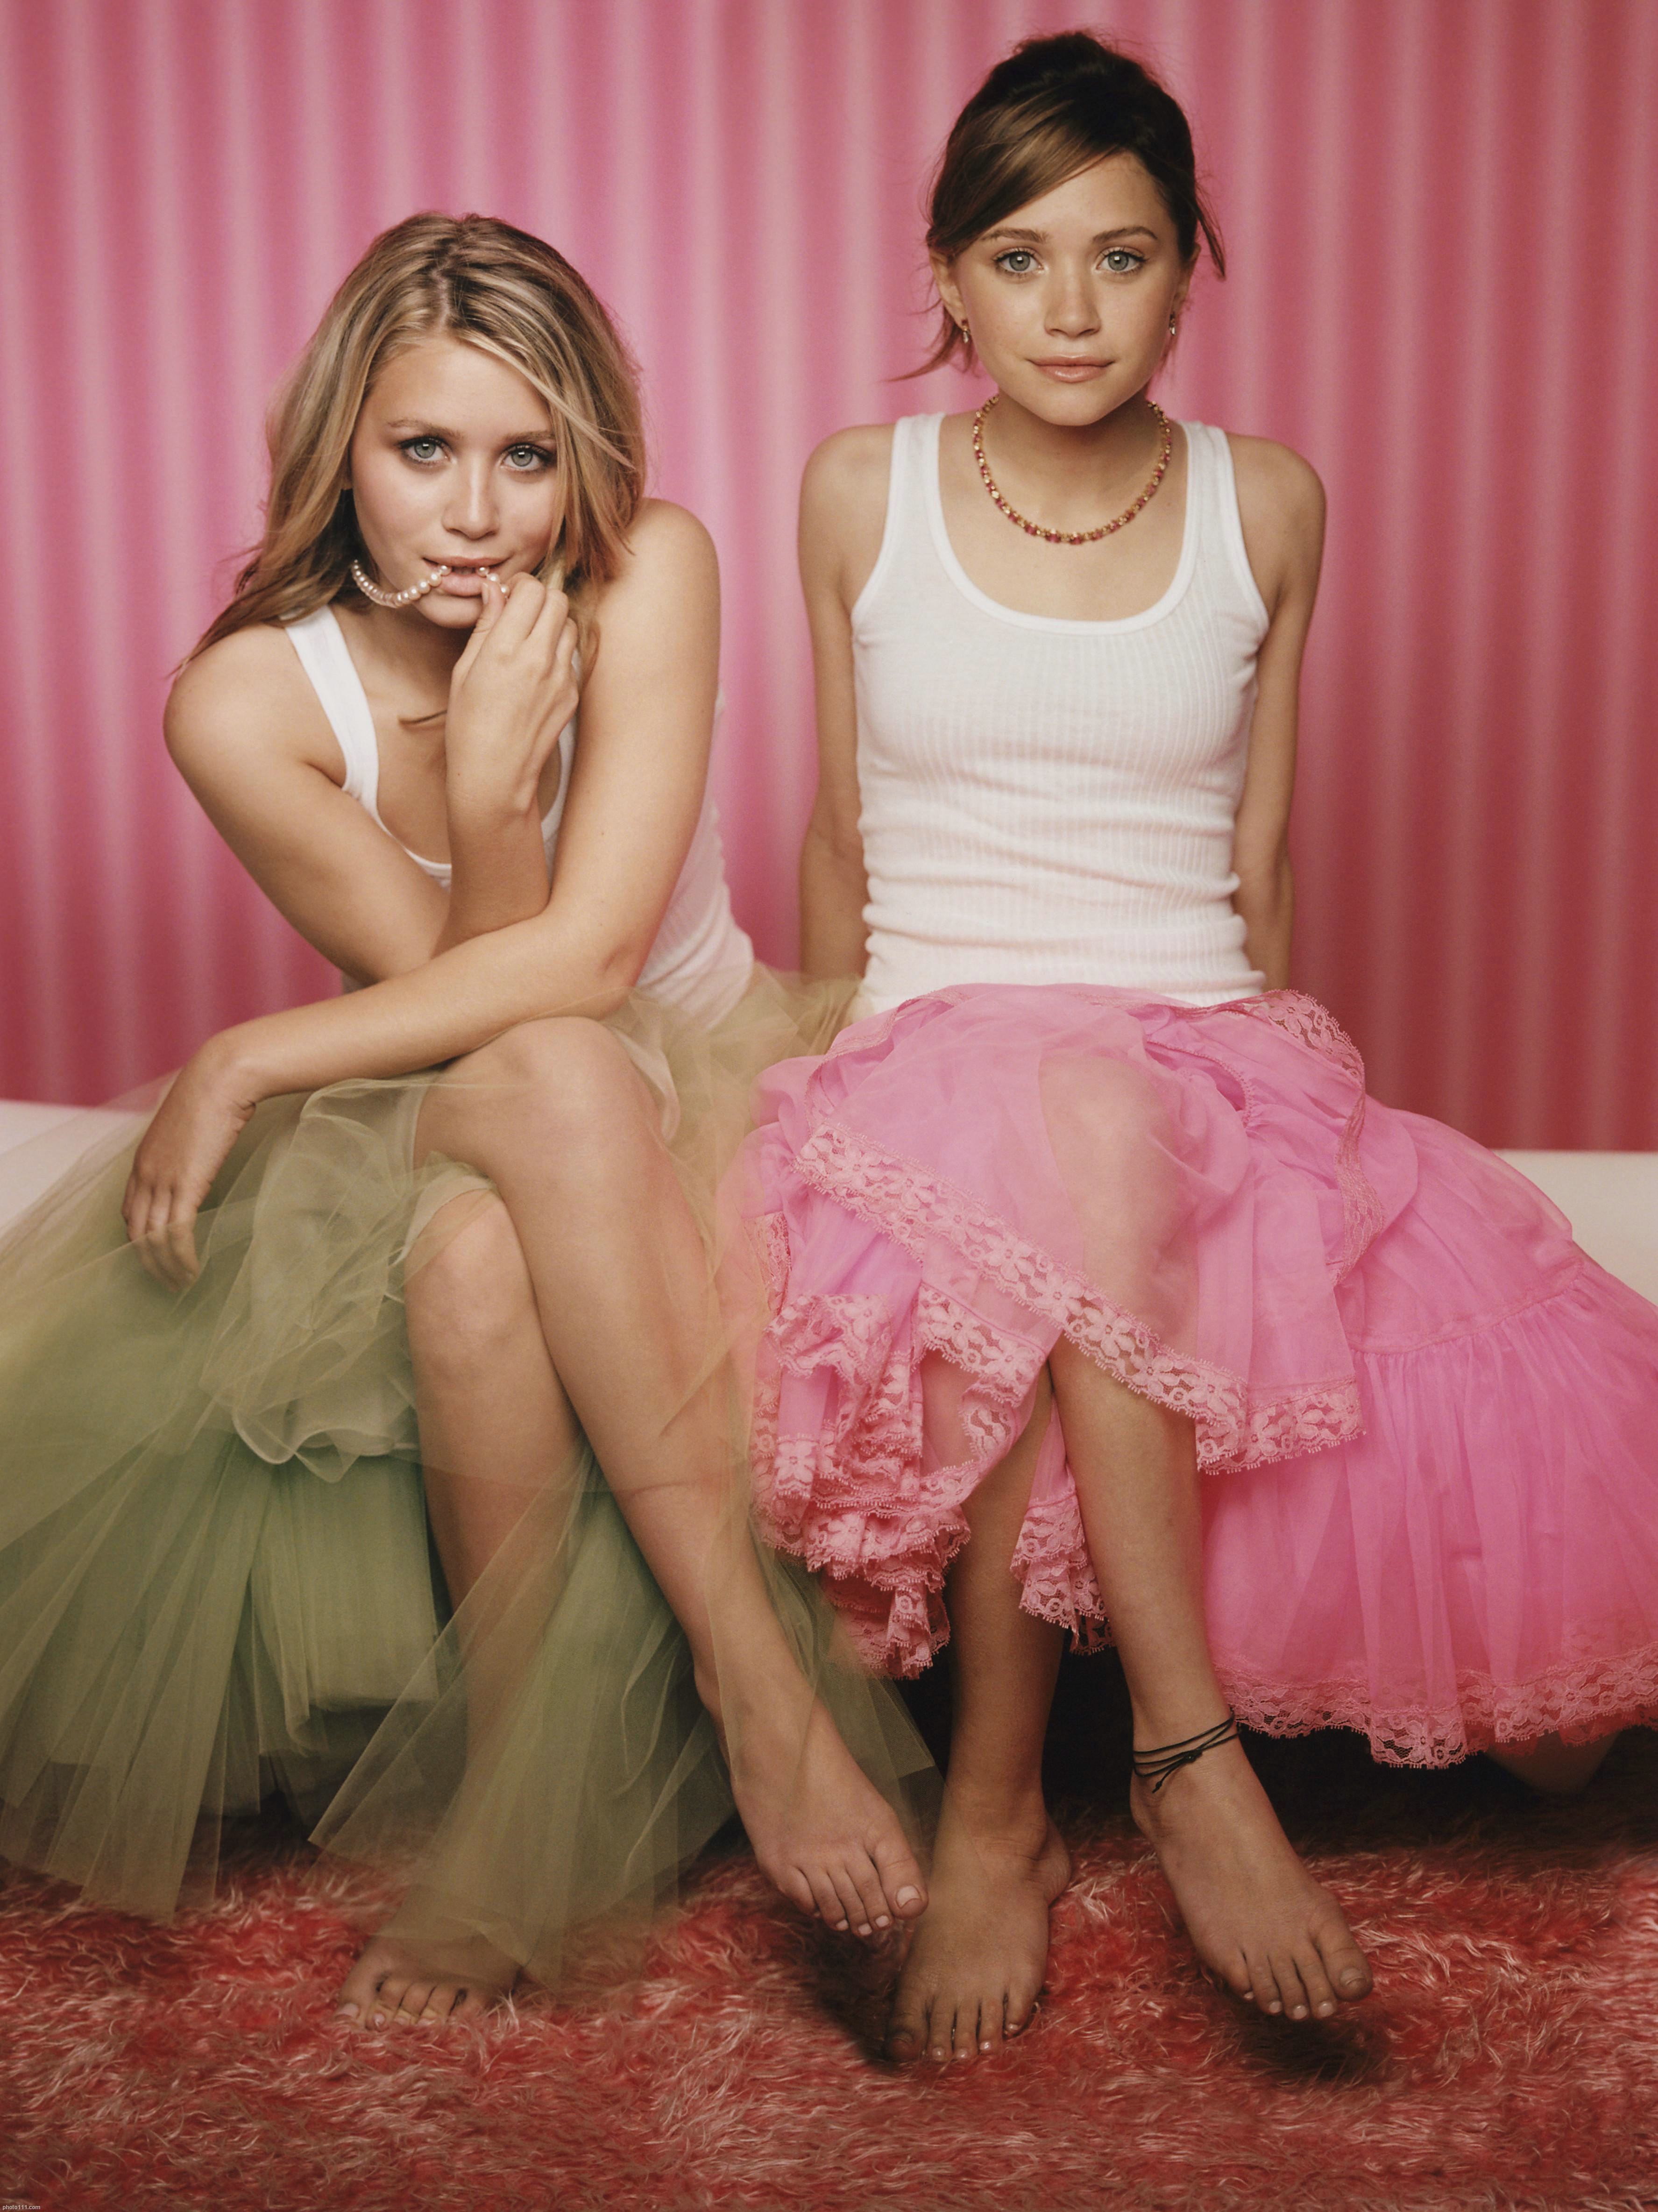 Photo 10 of 77 Mary Kate and Ashley Olsen   Olsen Twins 3550x4736